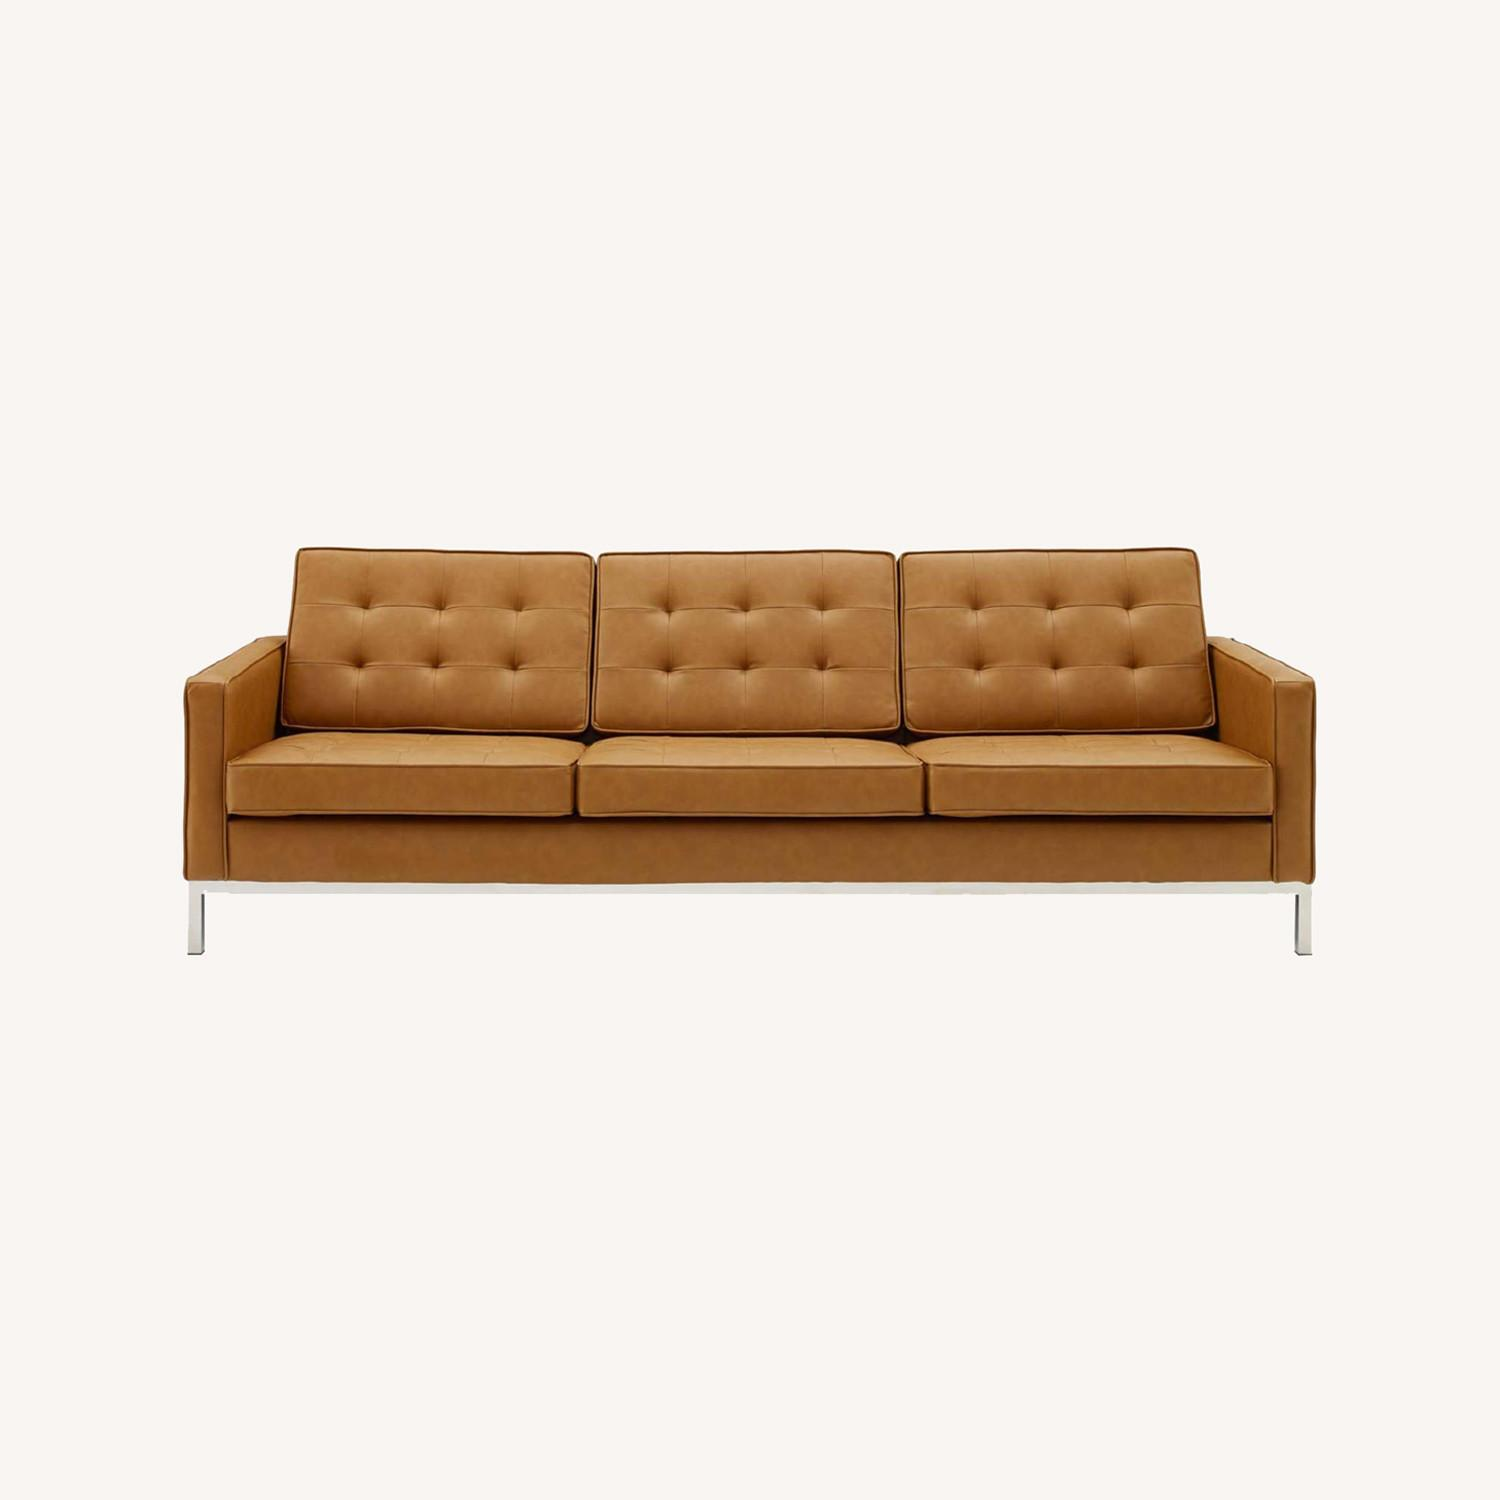 Modern Sofa In Tan Faux Leather Upholstery - image-6